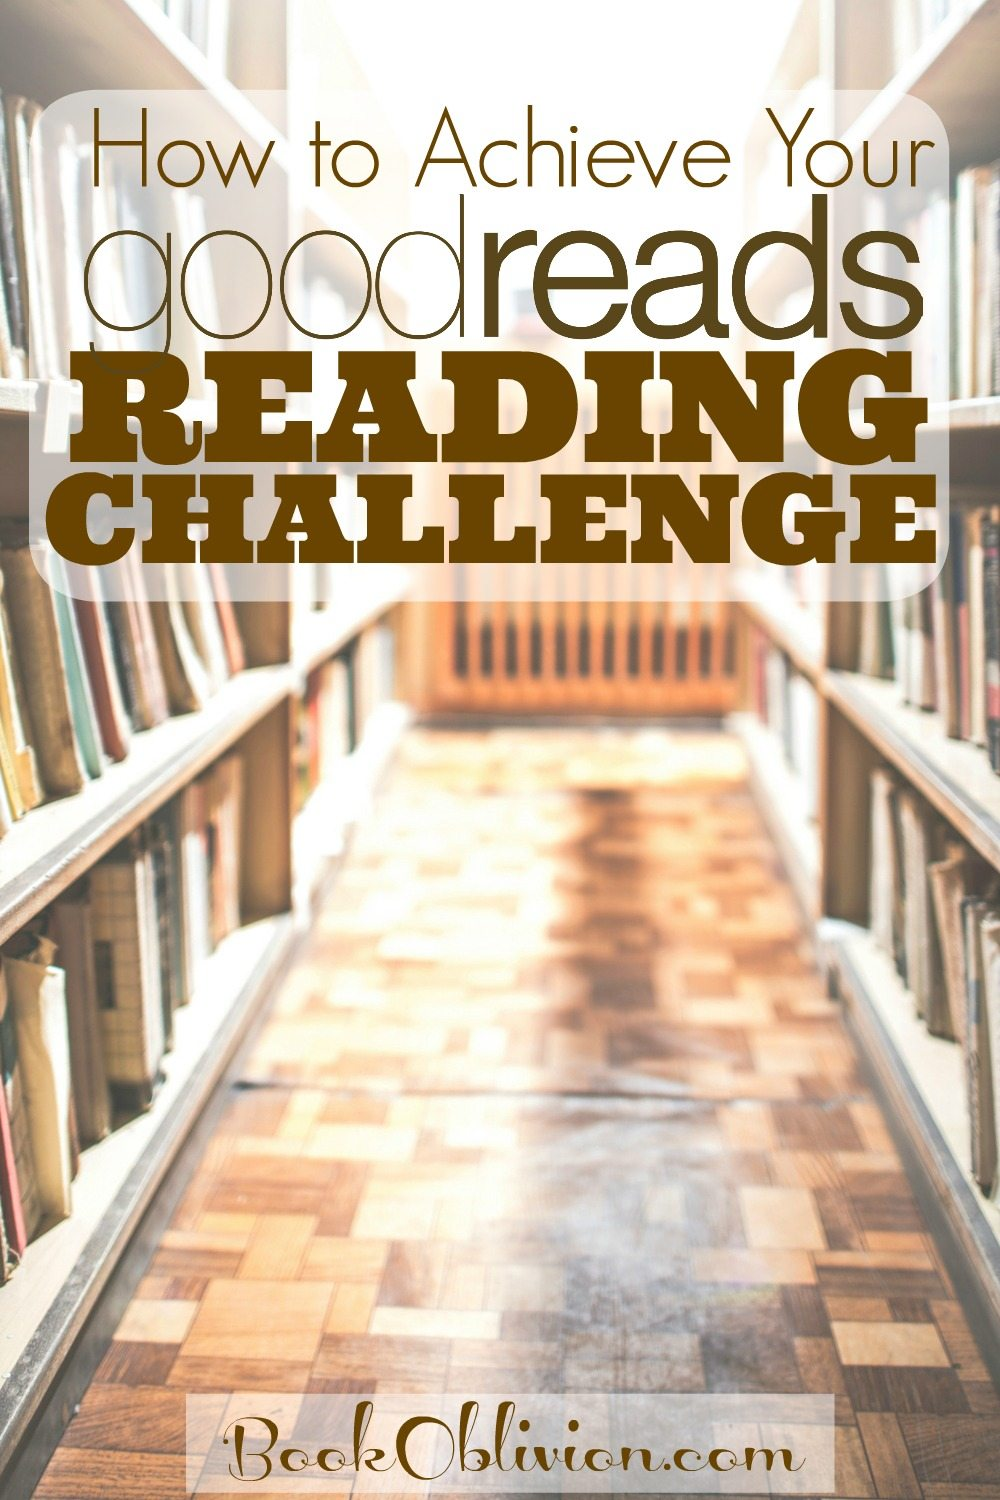 How to Achieve Your Goodreads Reading Challenge